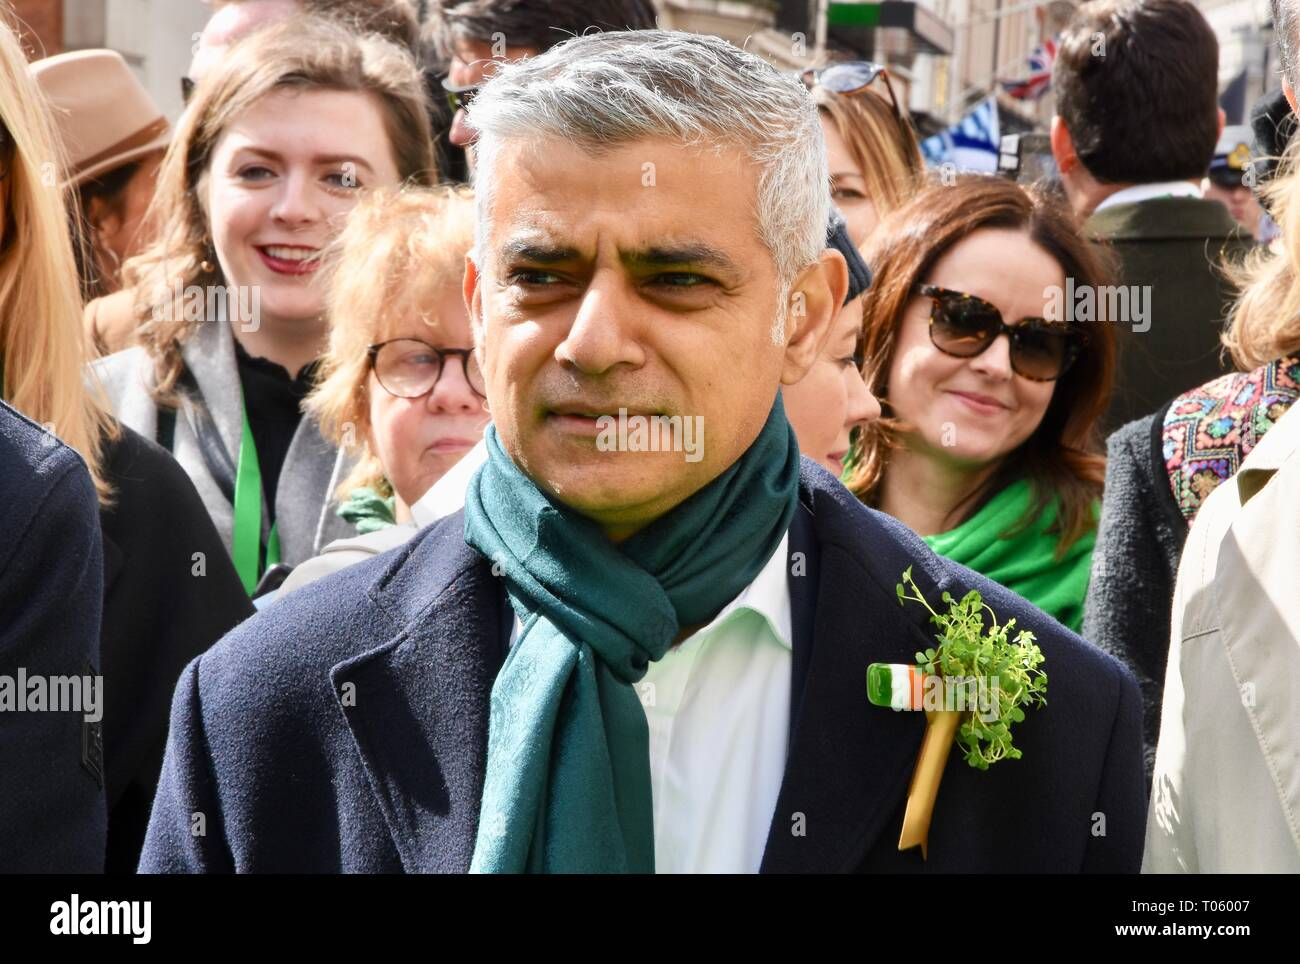 London, UK. 17th Mar, 2019. Sadiq Khan,St Patrick's Day Parade,Piccadilly,London.UK Credit: michael melia/Alamy Live News - Stock Image